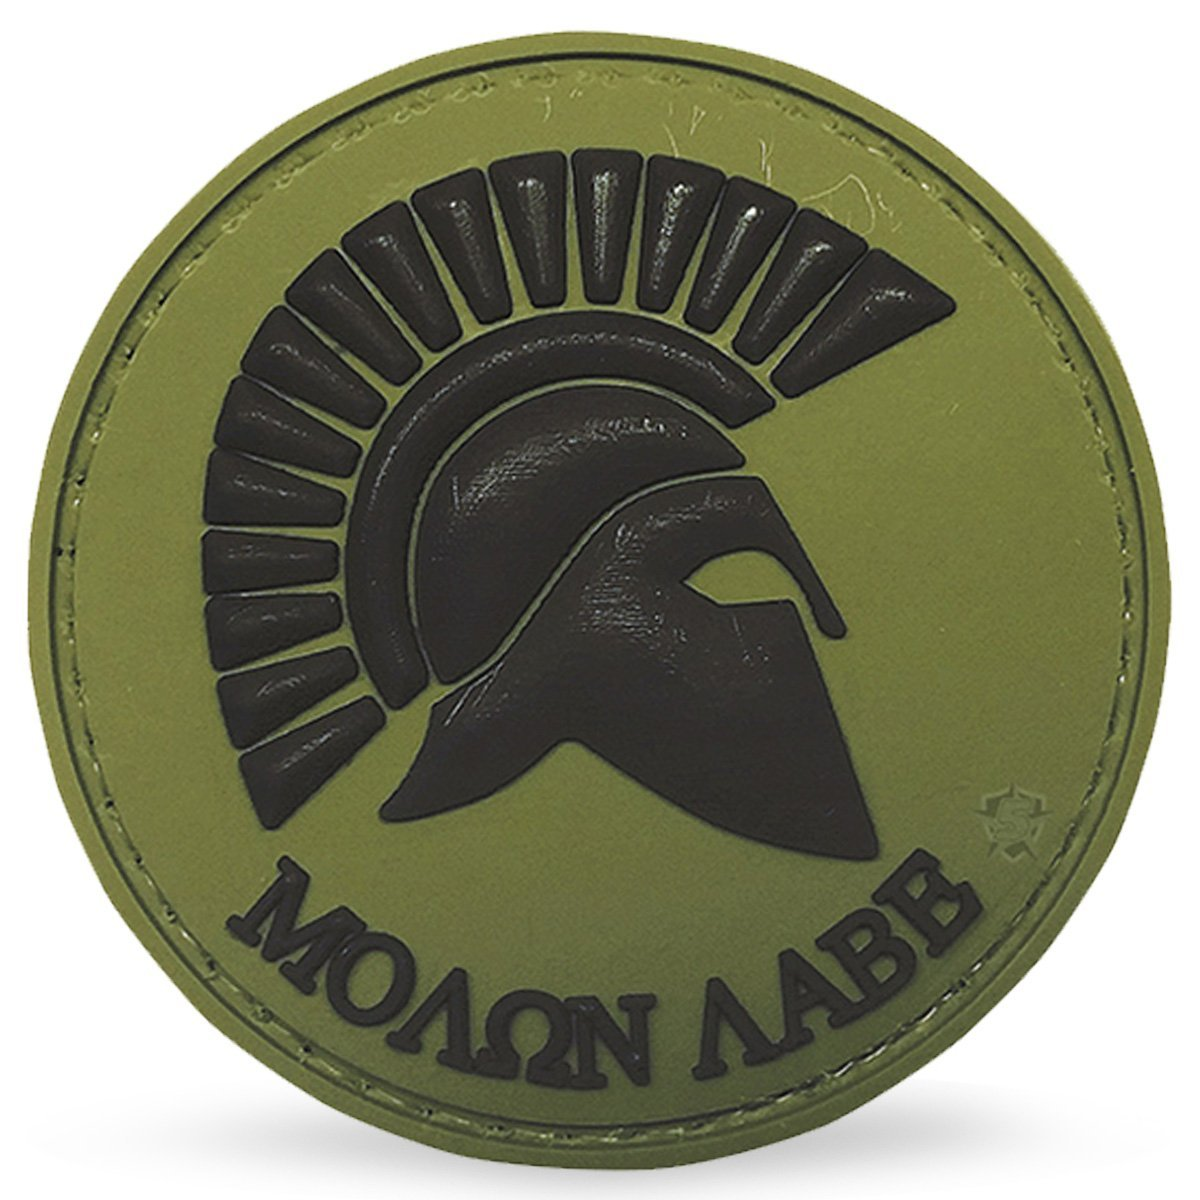 5ive Star Gear Molon Labe Patch | UKMCPro